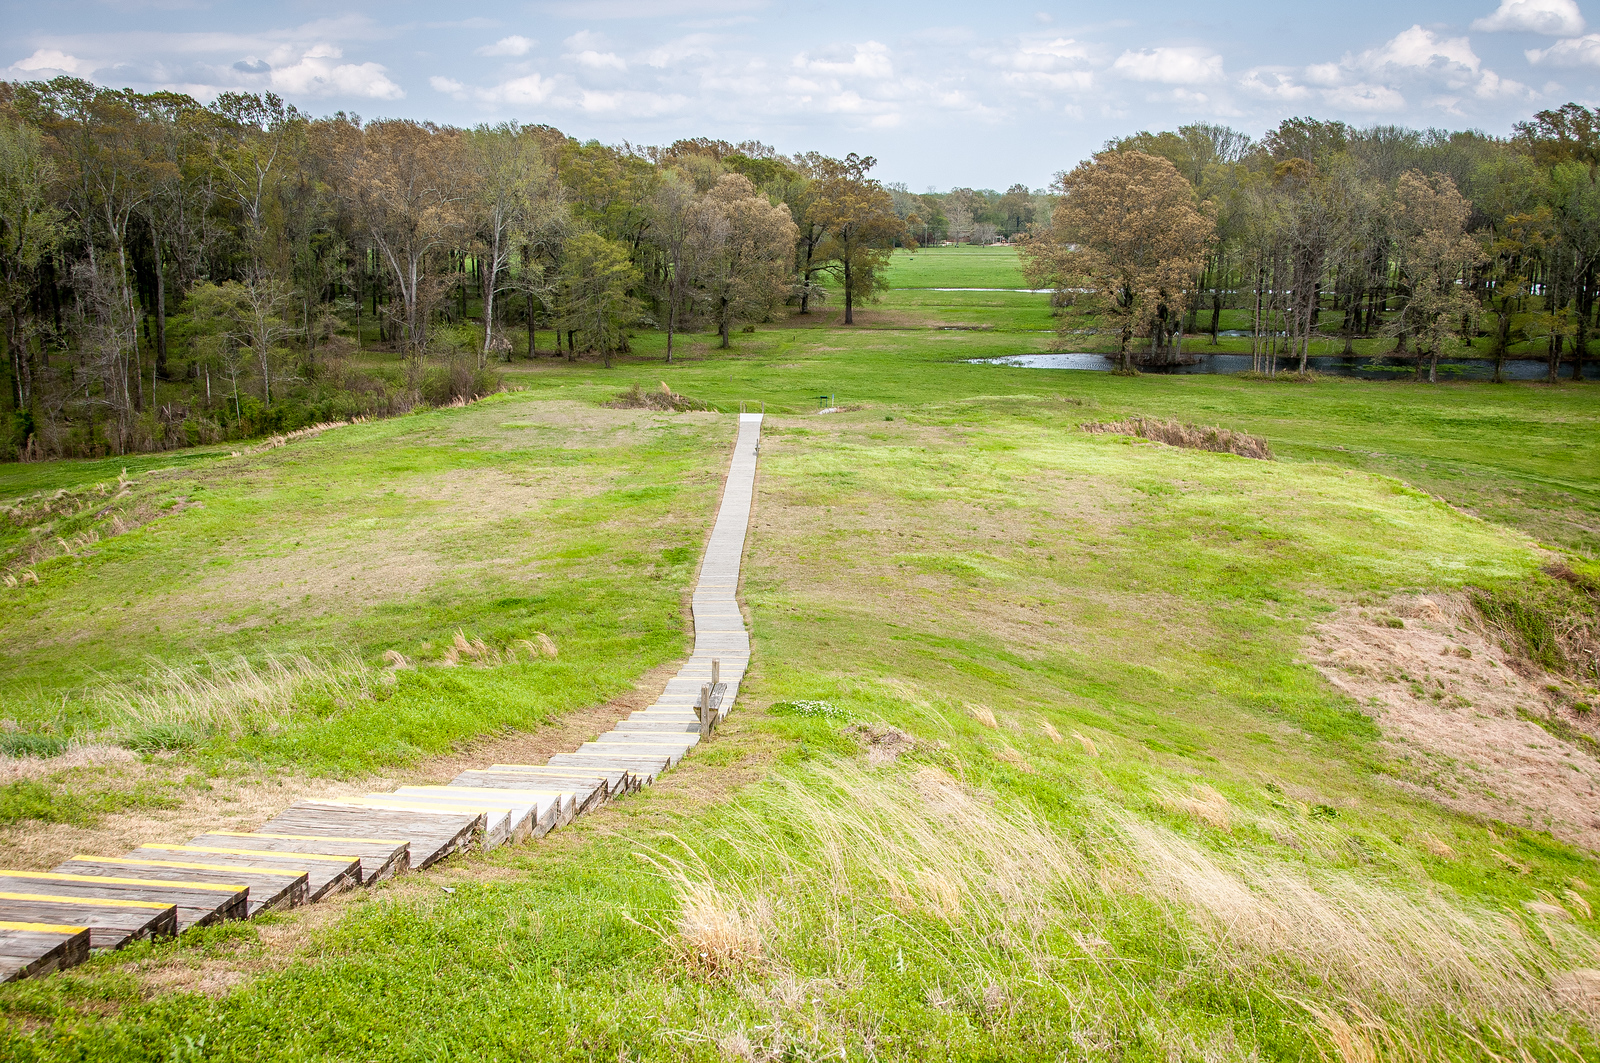 Monumental Earthworks of Poverty Point UNESCO World Heritage Site